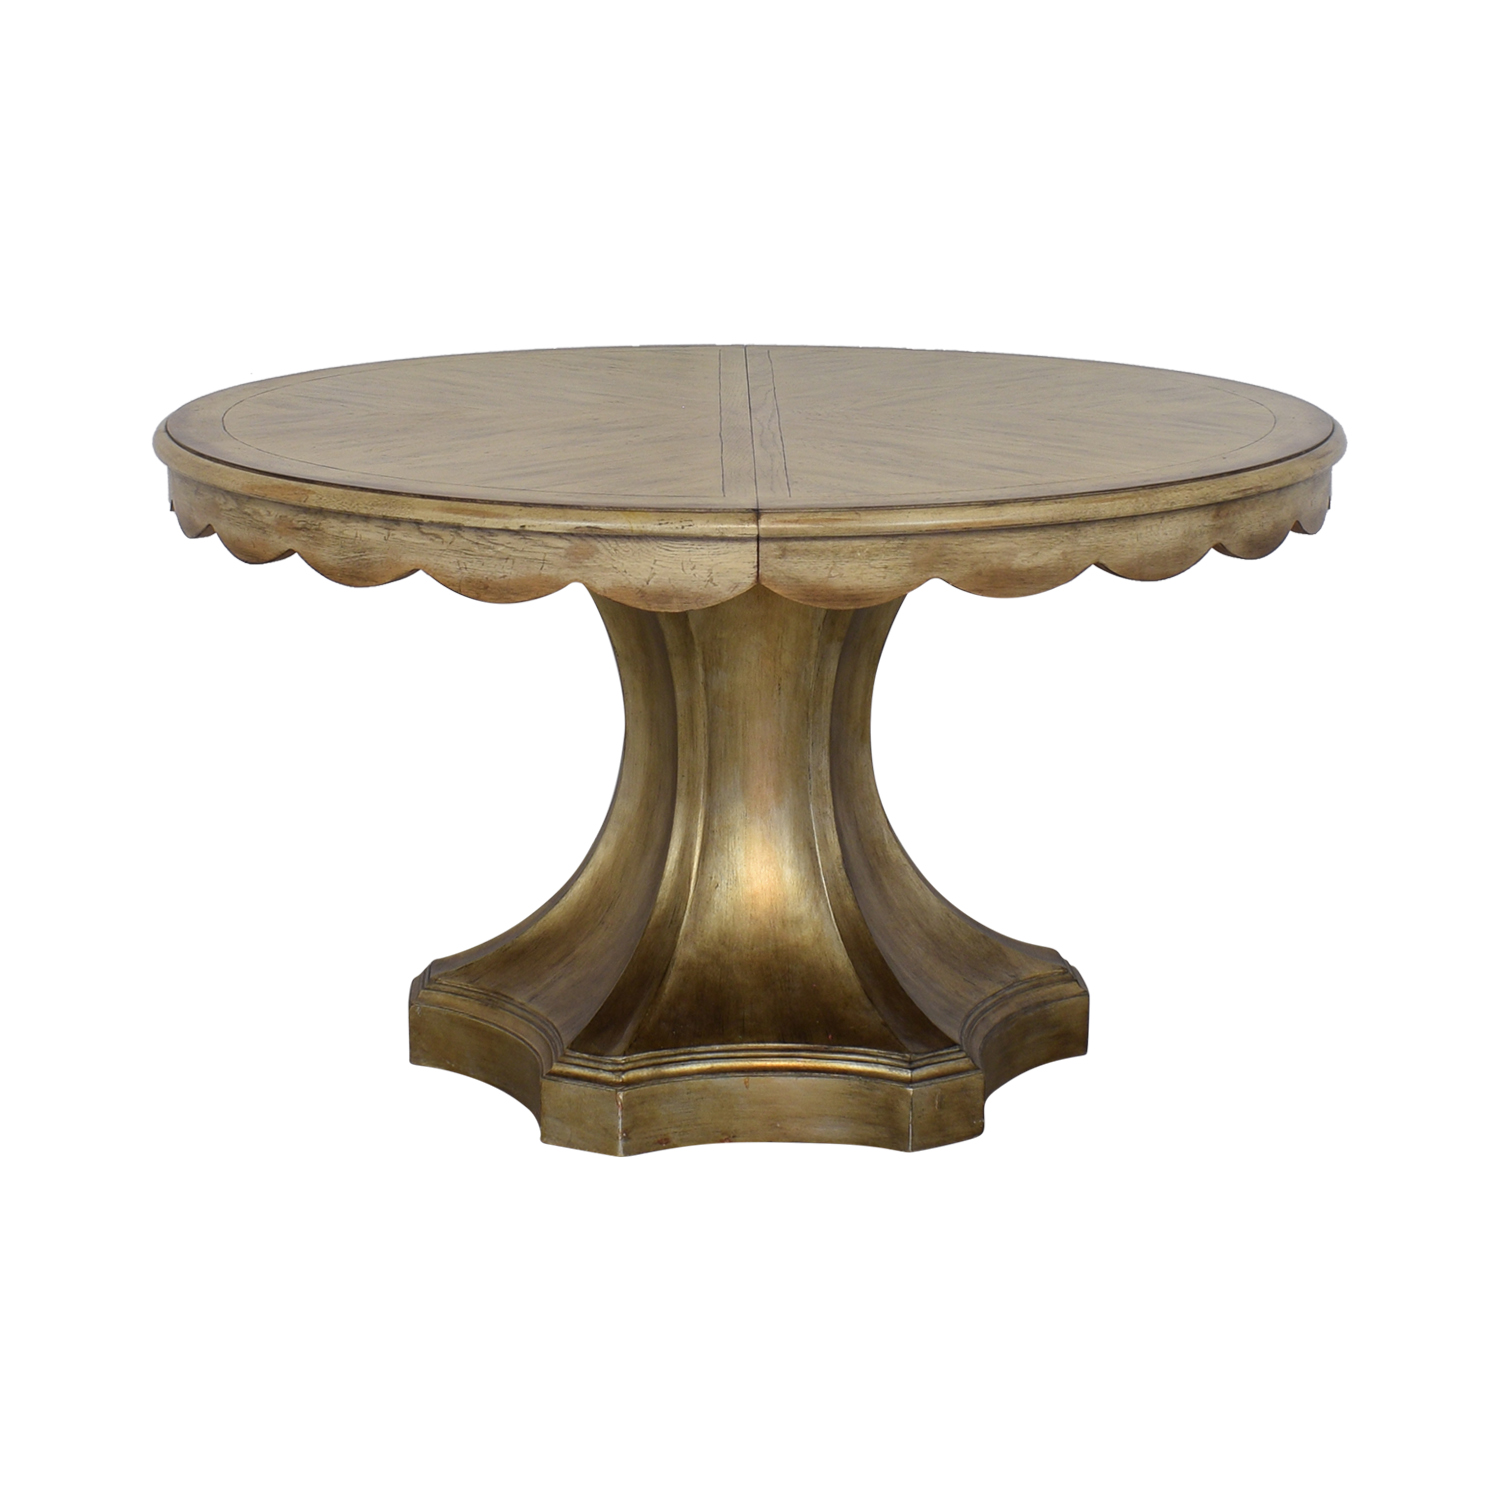 Hooker Furniture Hooker Furniture Pedestal Table price